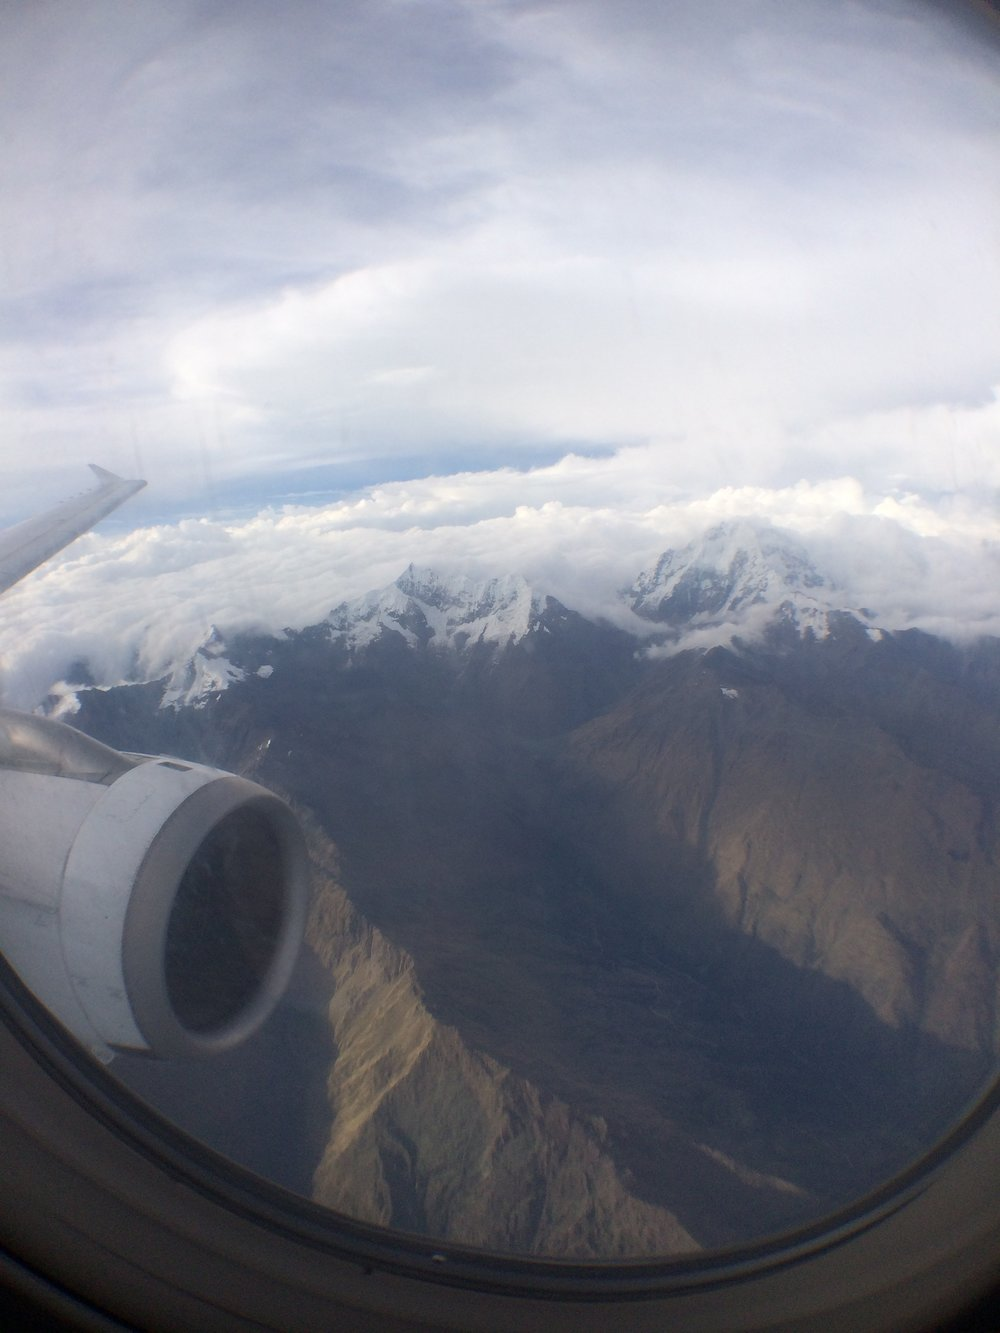 I took a connecting flight from Lima to Cuzco; there are a lot of frequent flights, given Machu Picchu is such a tourist destination. Scary view!